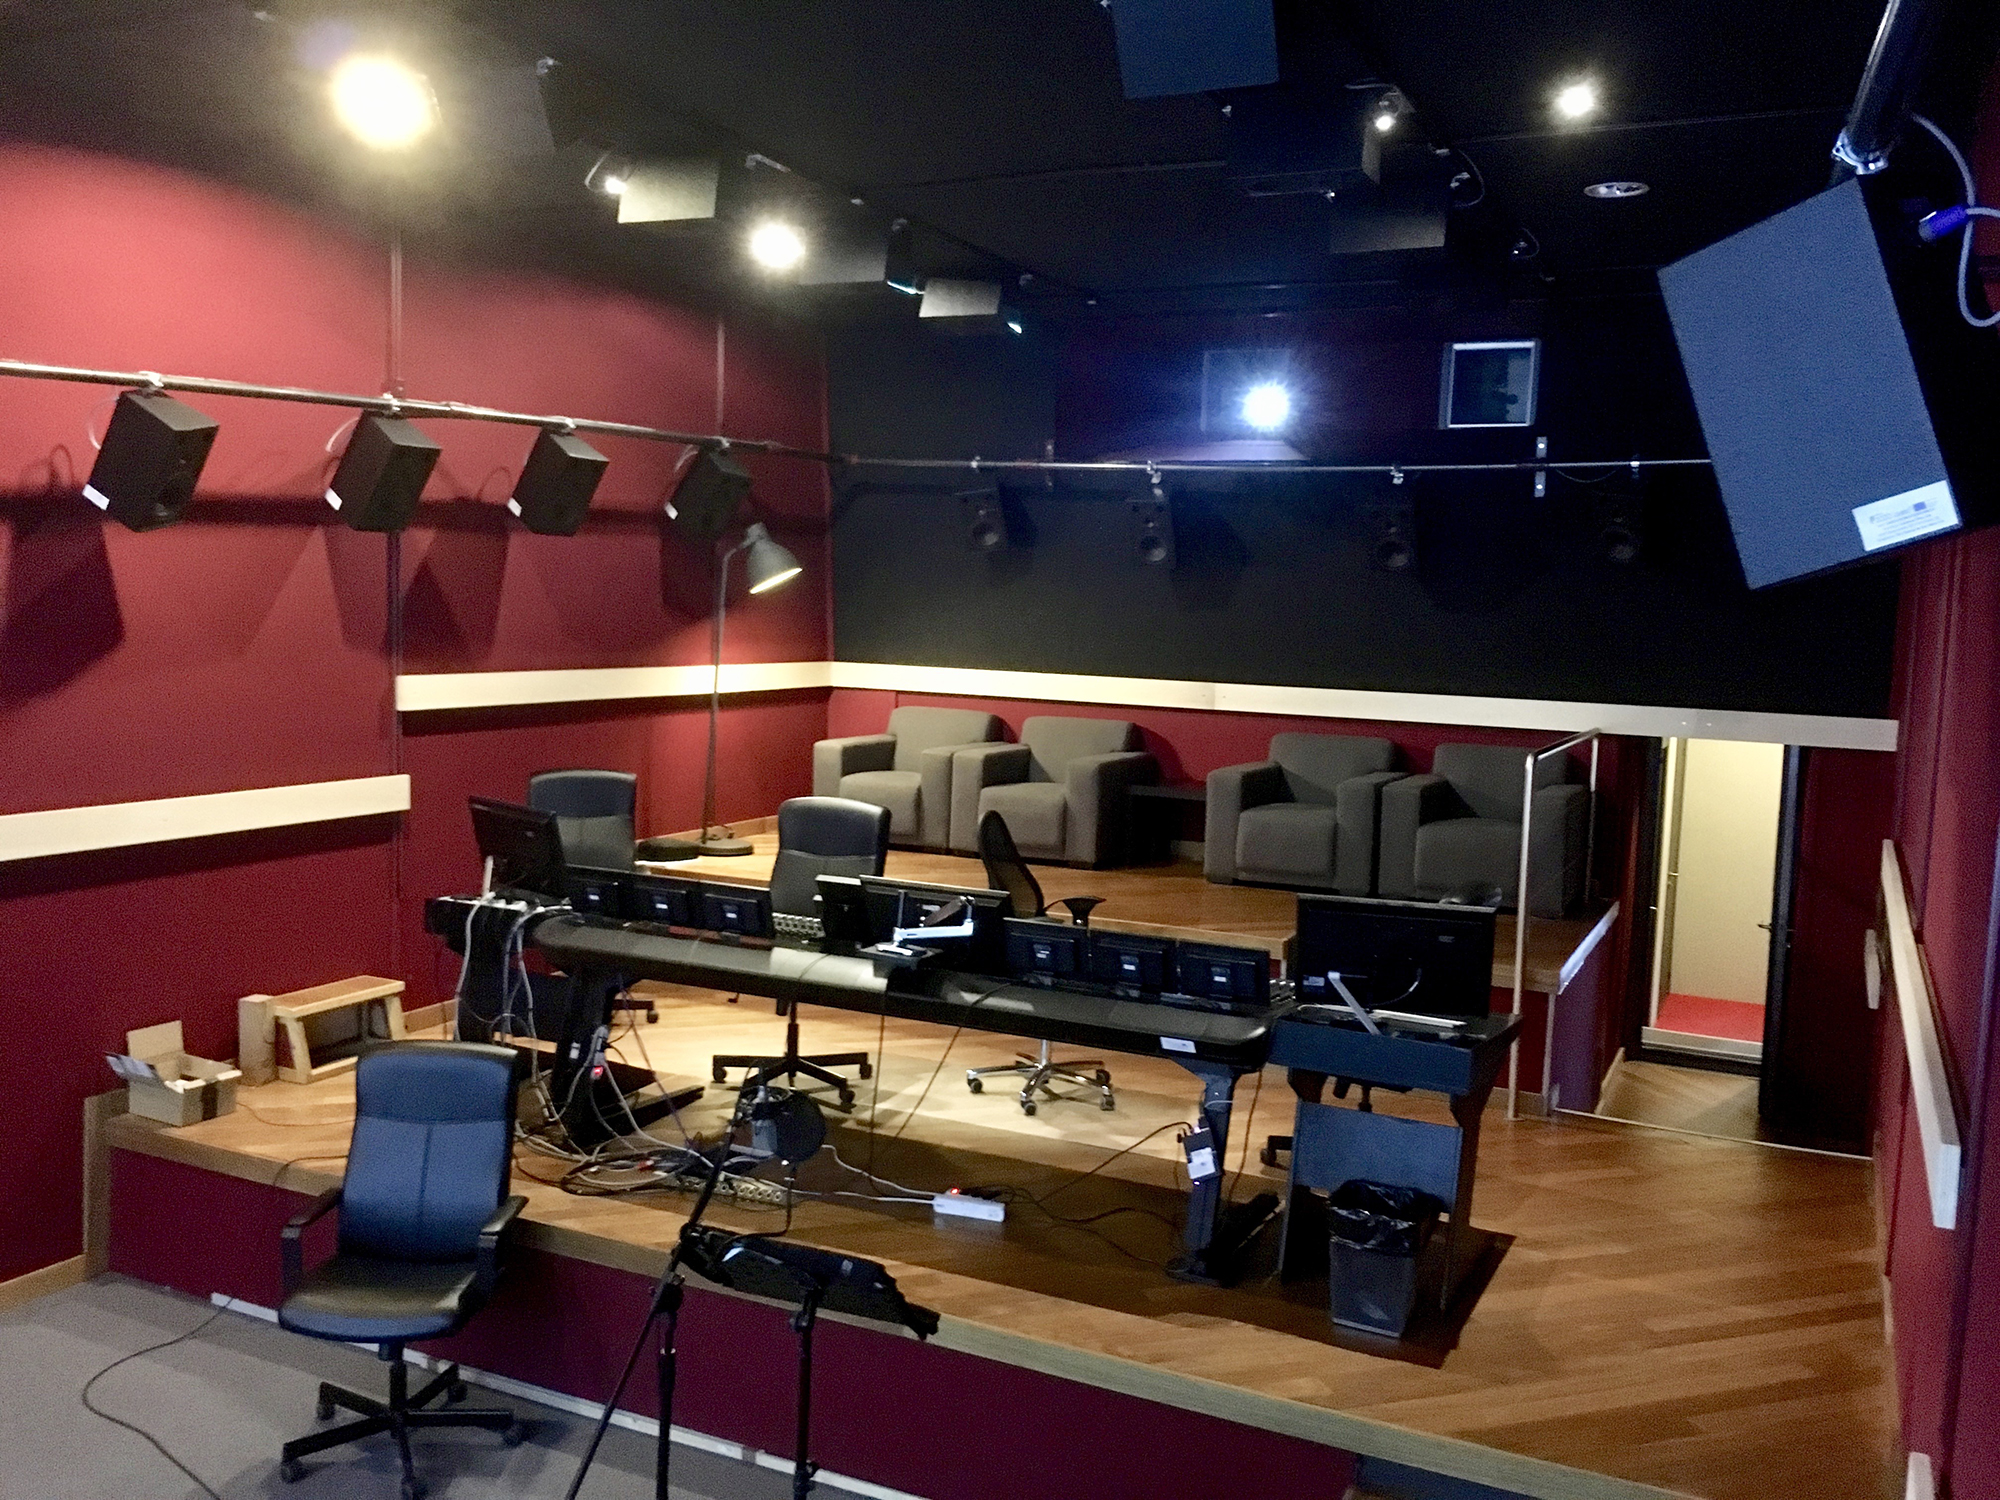 Audio Excellence Home Cinema High End Screen Loudspeakers What Does Your Wiring Cabinet Look Like Avs Forum Theater Branko Ran A Demo First With The Usual Dolby Test Blu Ray Which I Am Familiar And Then An Extract Of Movie They Have Been Producing Locally